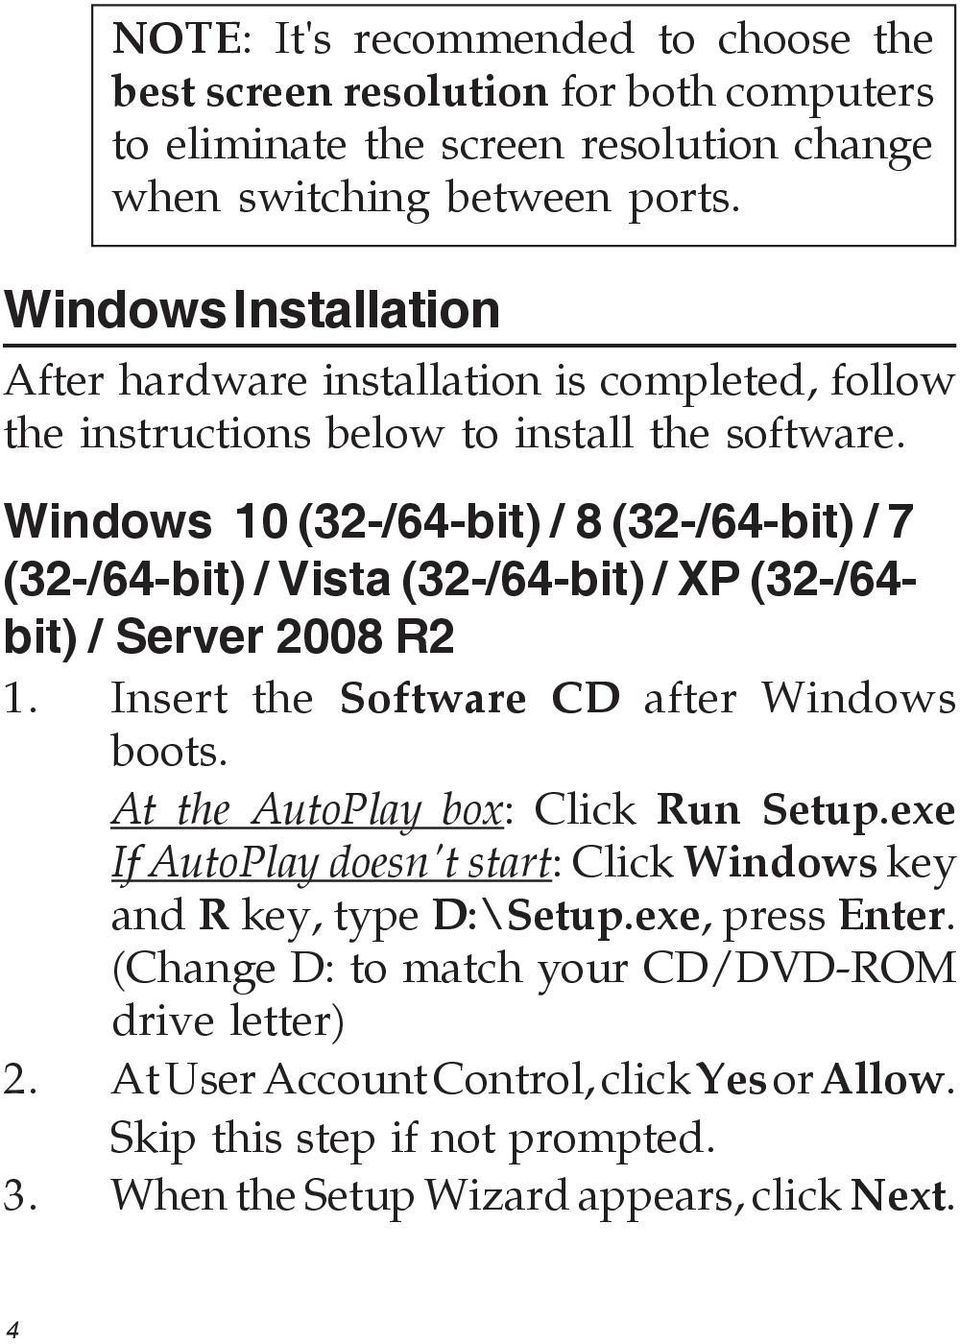 Windows 10 (32-/64-bit) / 8 (32-/64-bit) / 7 (32-/64-bit) / Vista (32-/64-bit) / XP (32-/64- bit) / Server 2008 R2 1. Insert the Software CD after Windows boots.